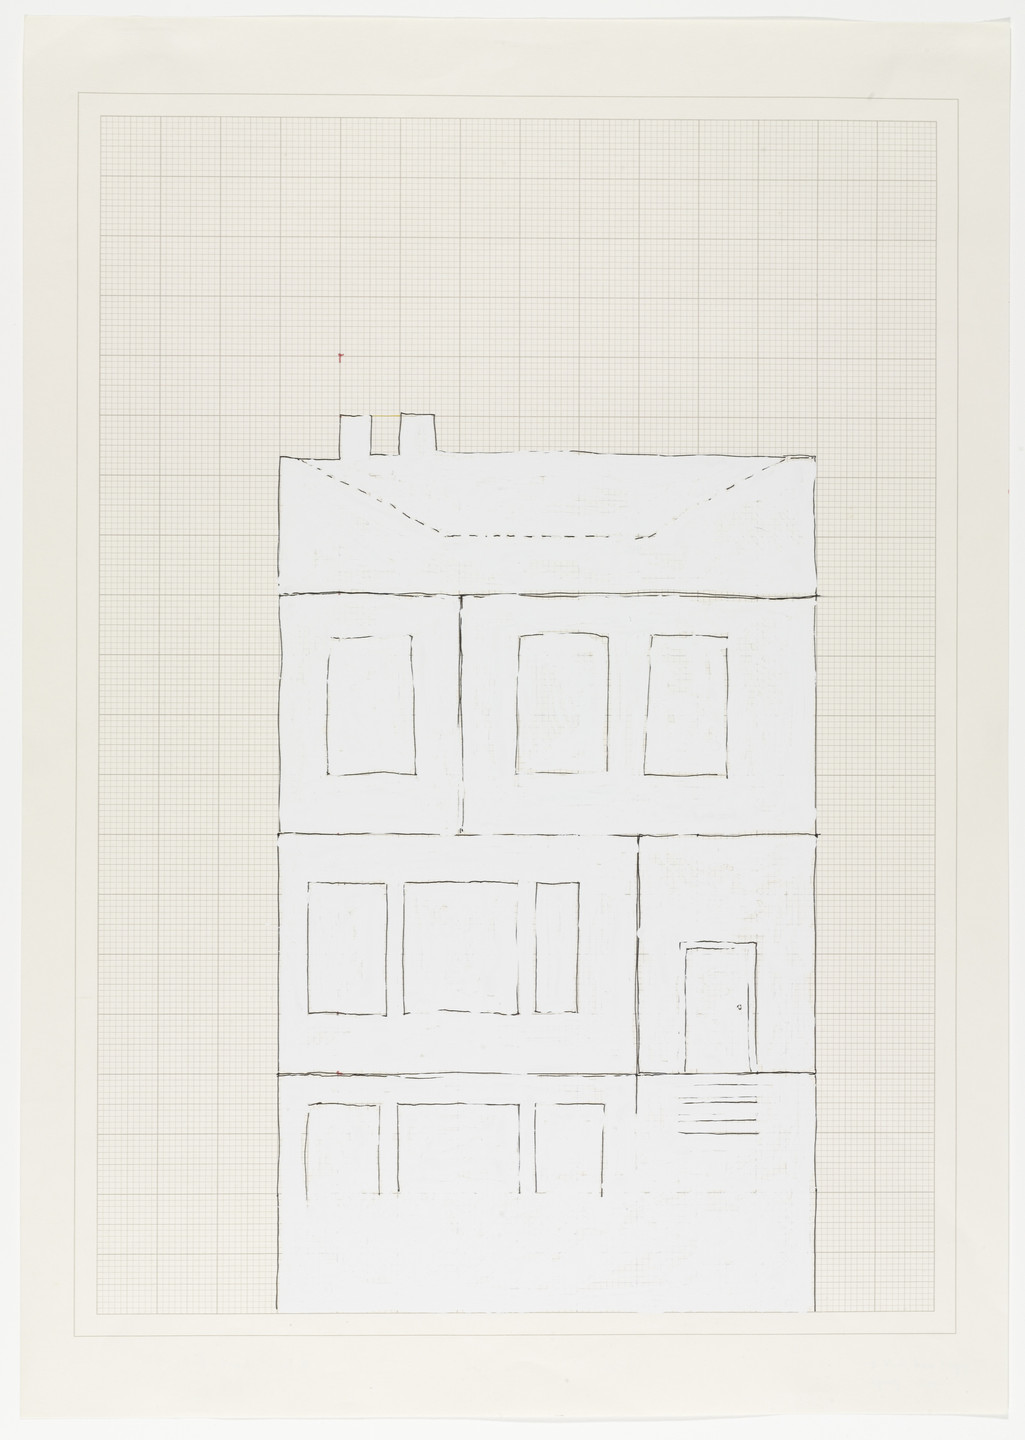 Rachel Whiteread. House. 1992